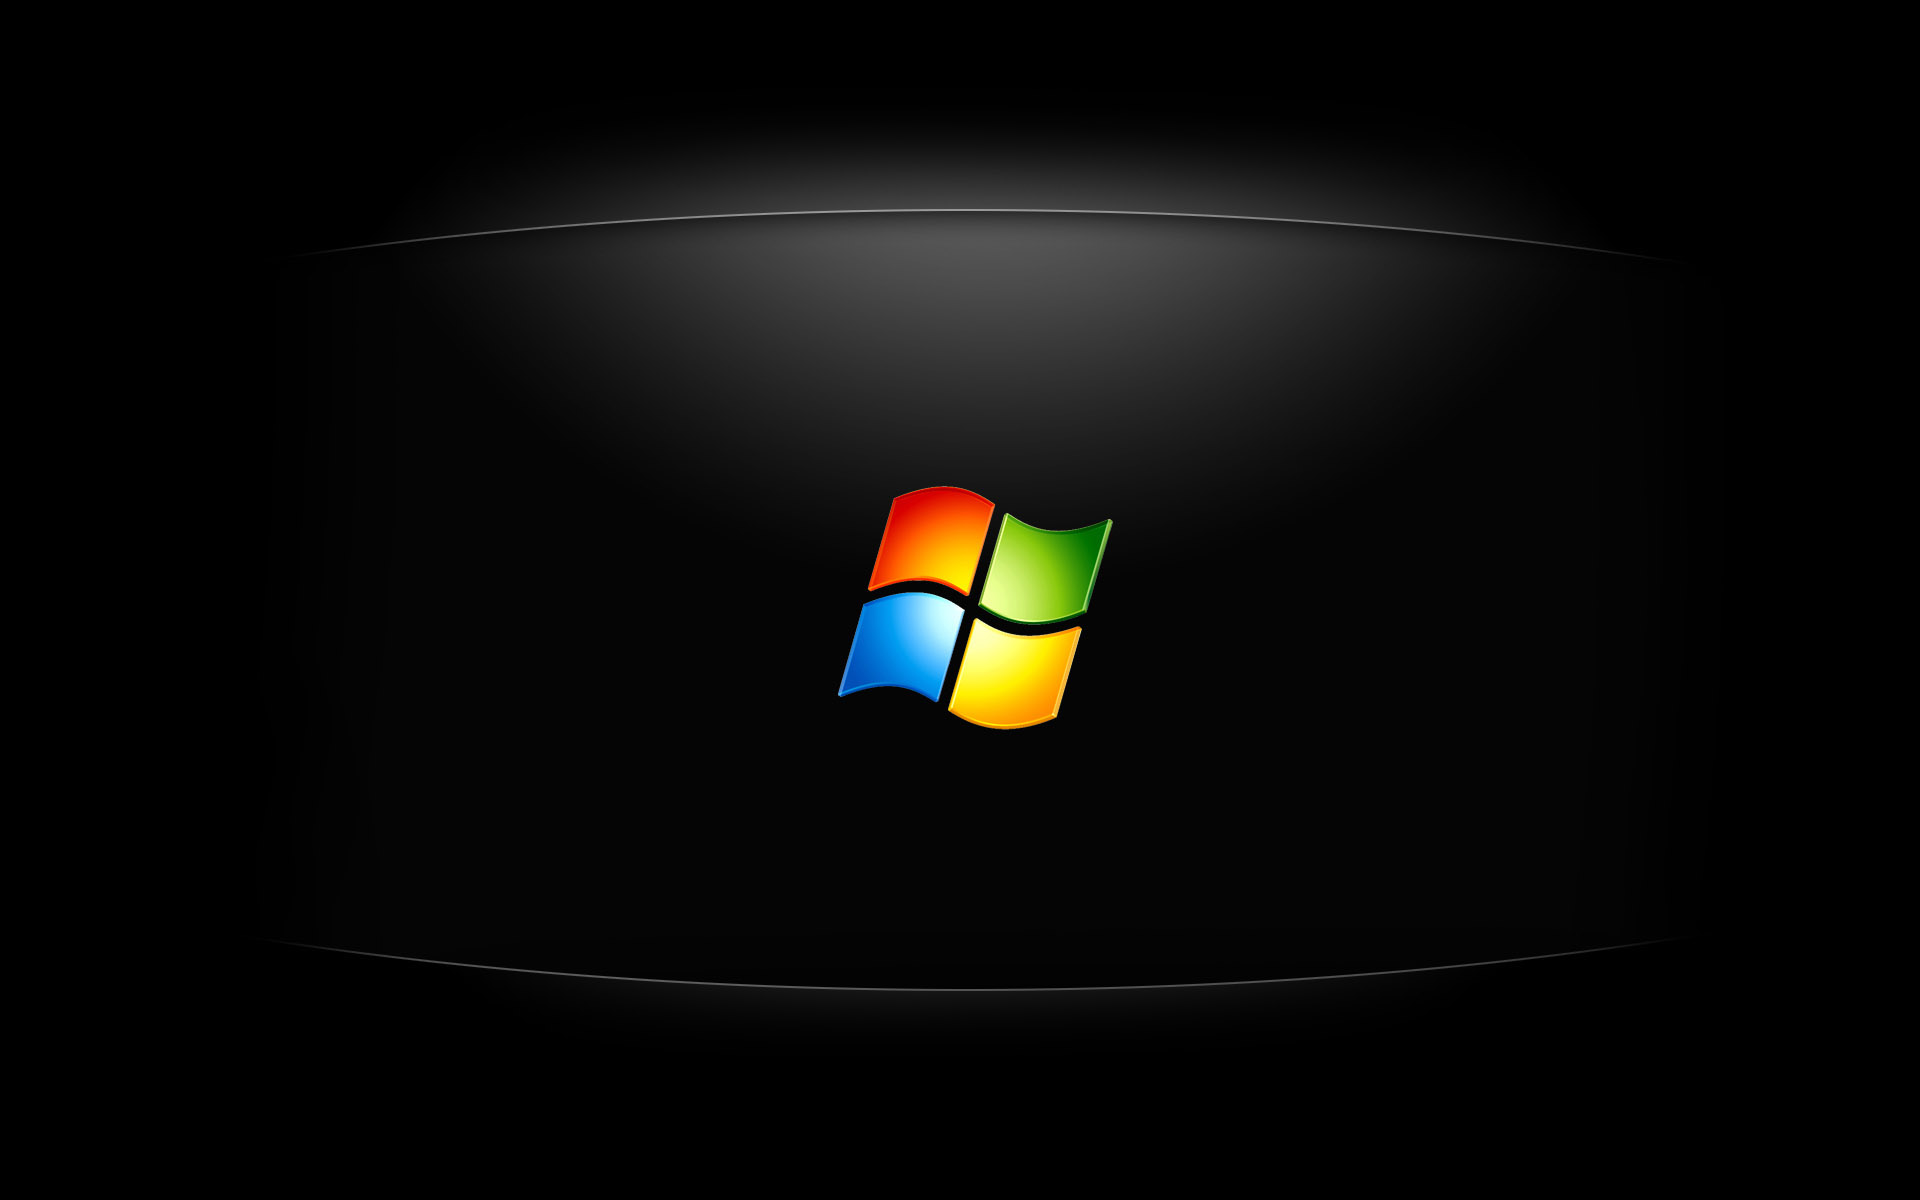 Windows Tiles On Black Hd Wallpapers